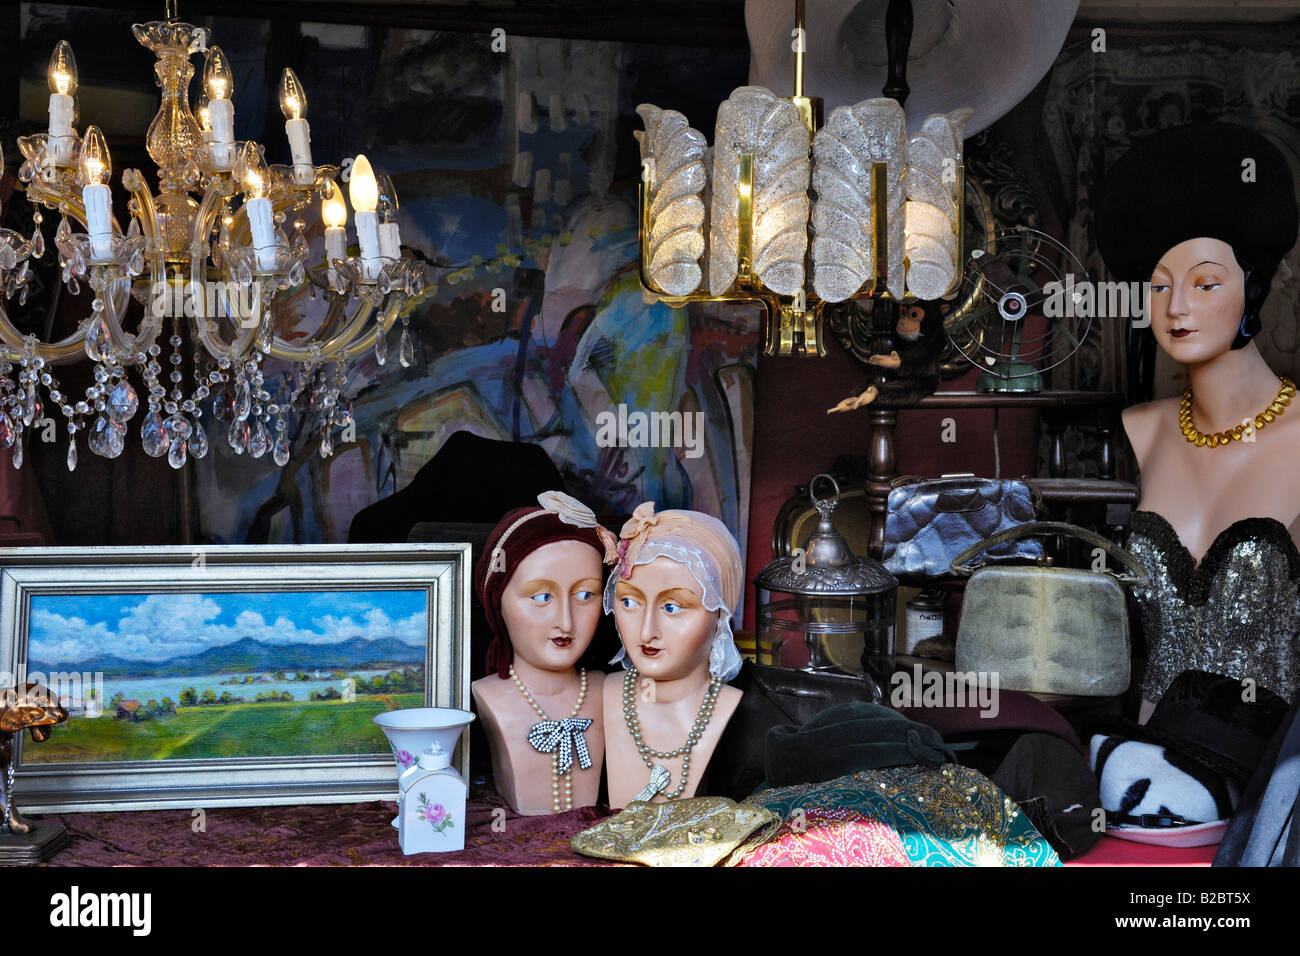 Paintings, busts and various other things, Auer Dult, traditional market in Munich, Bavaria, Germany, Europe - Stock Image